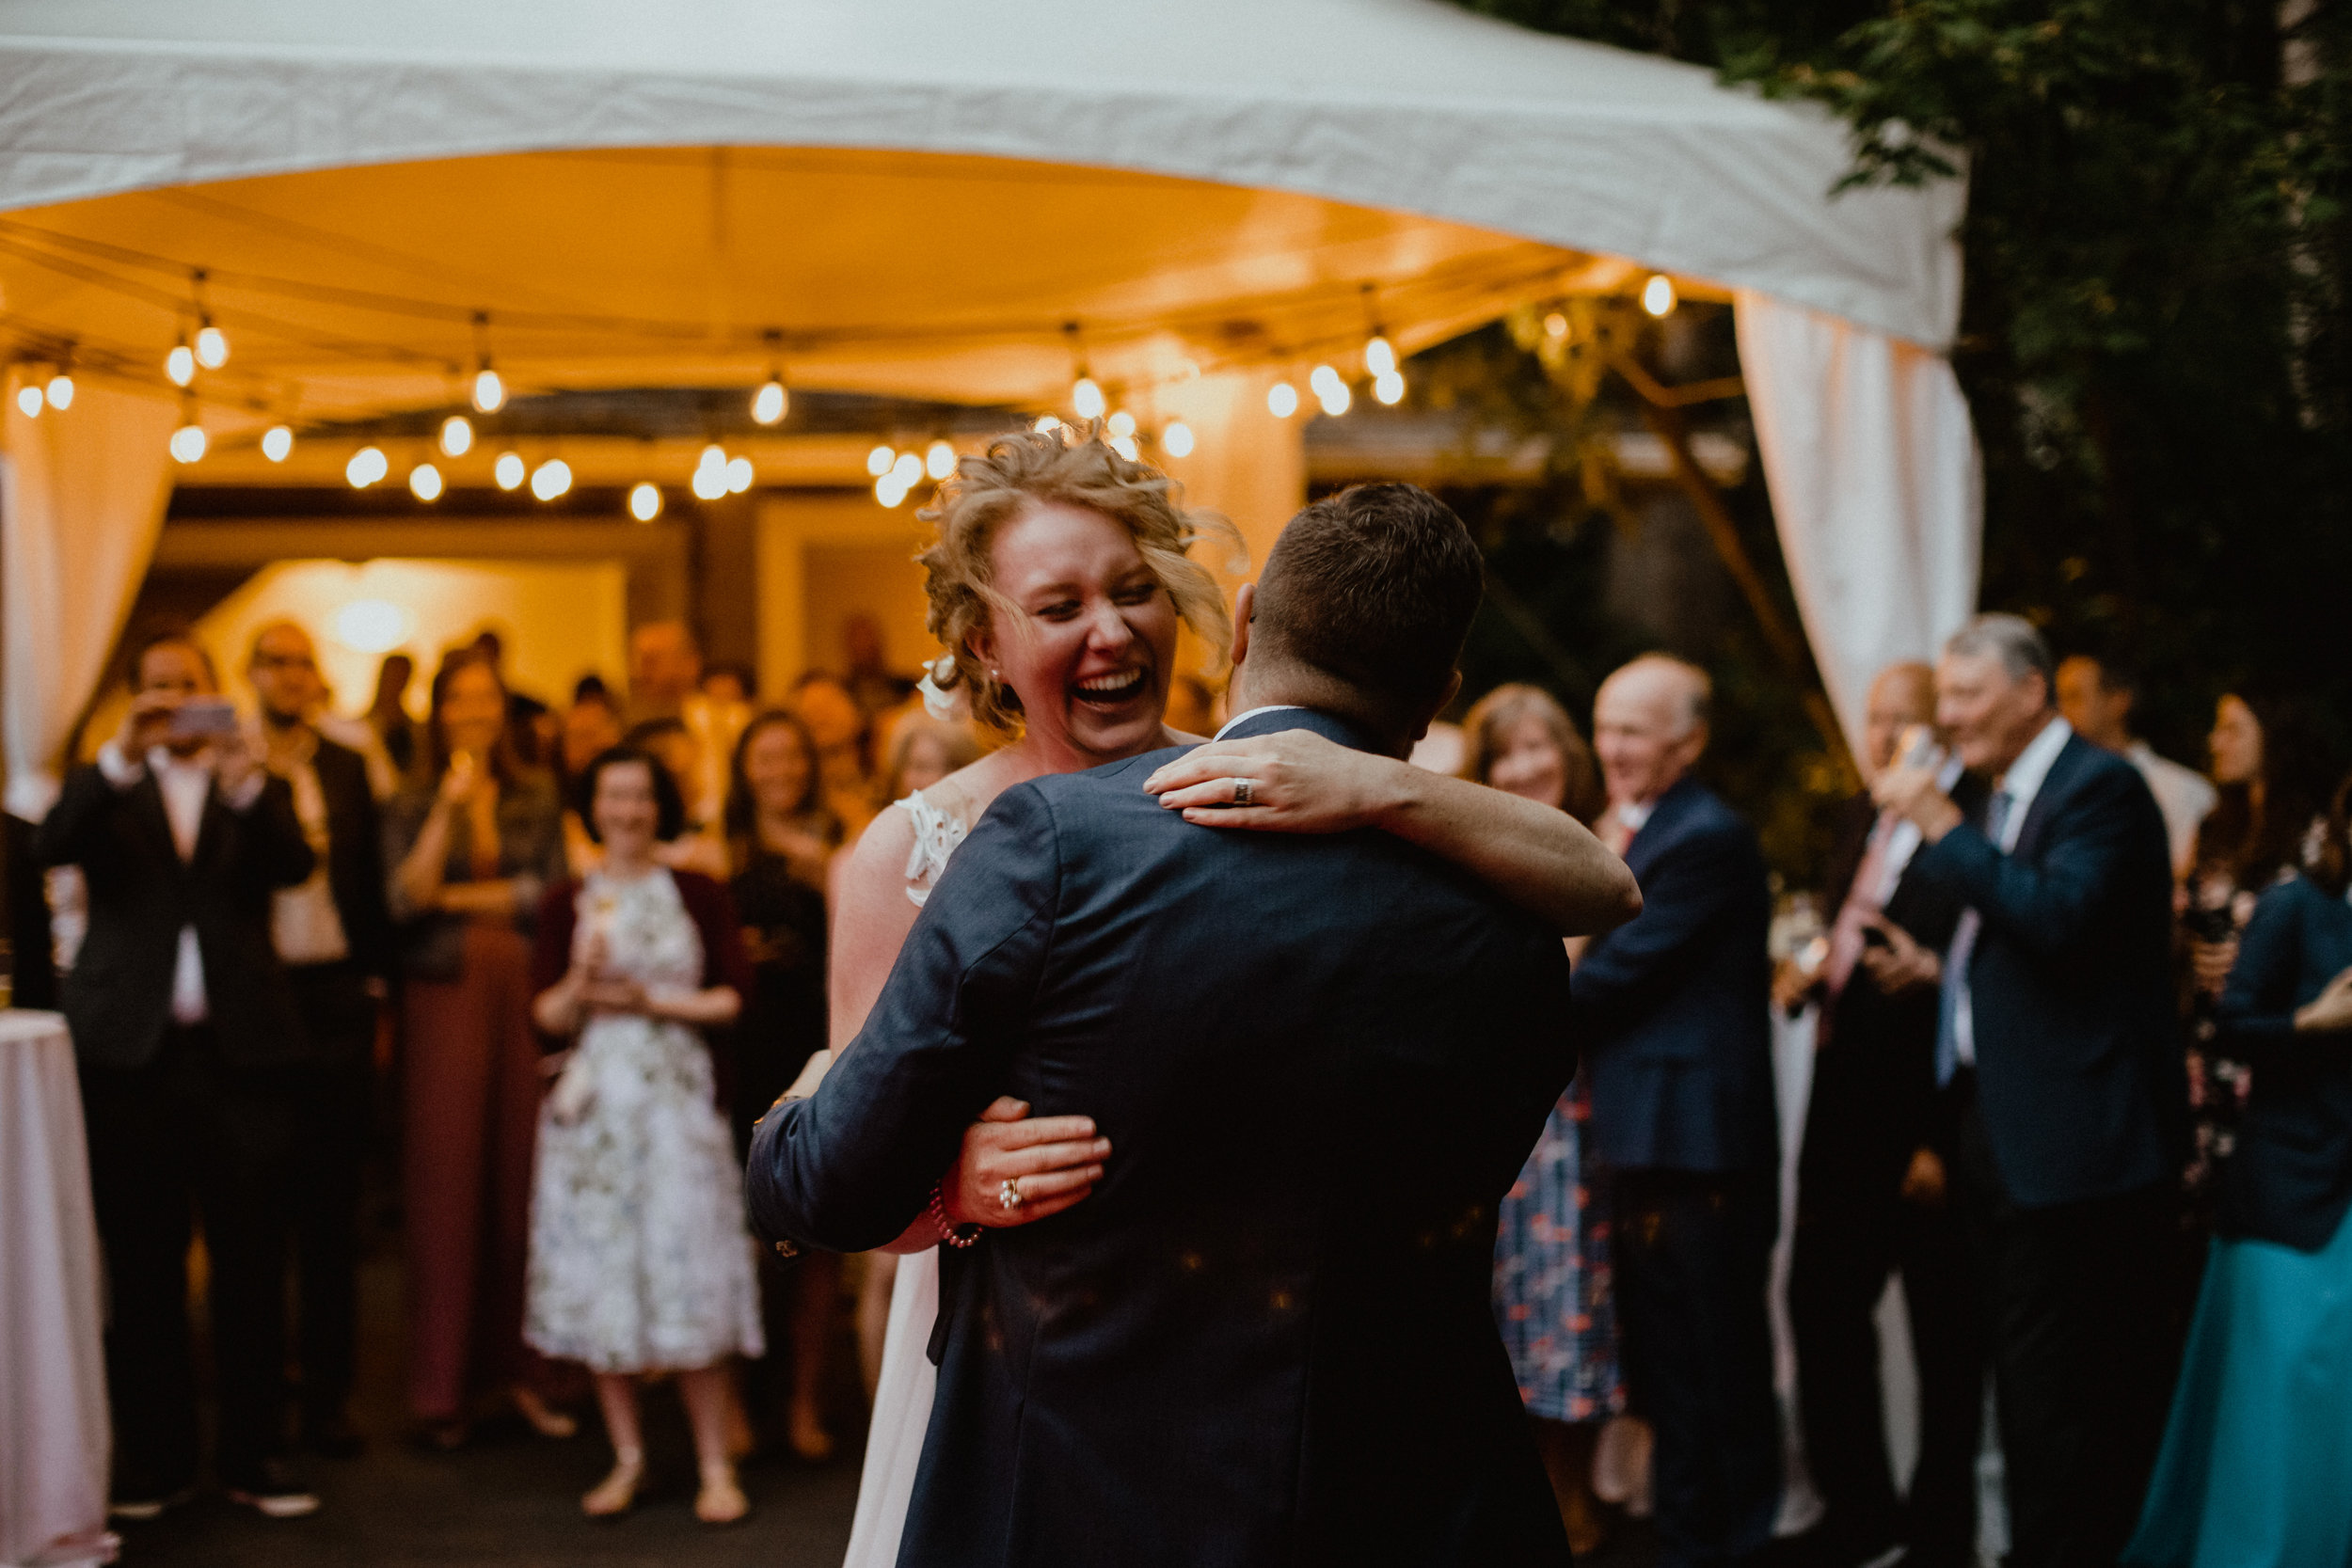 First dance at an intimate backyard wedding in West Vancouver